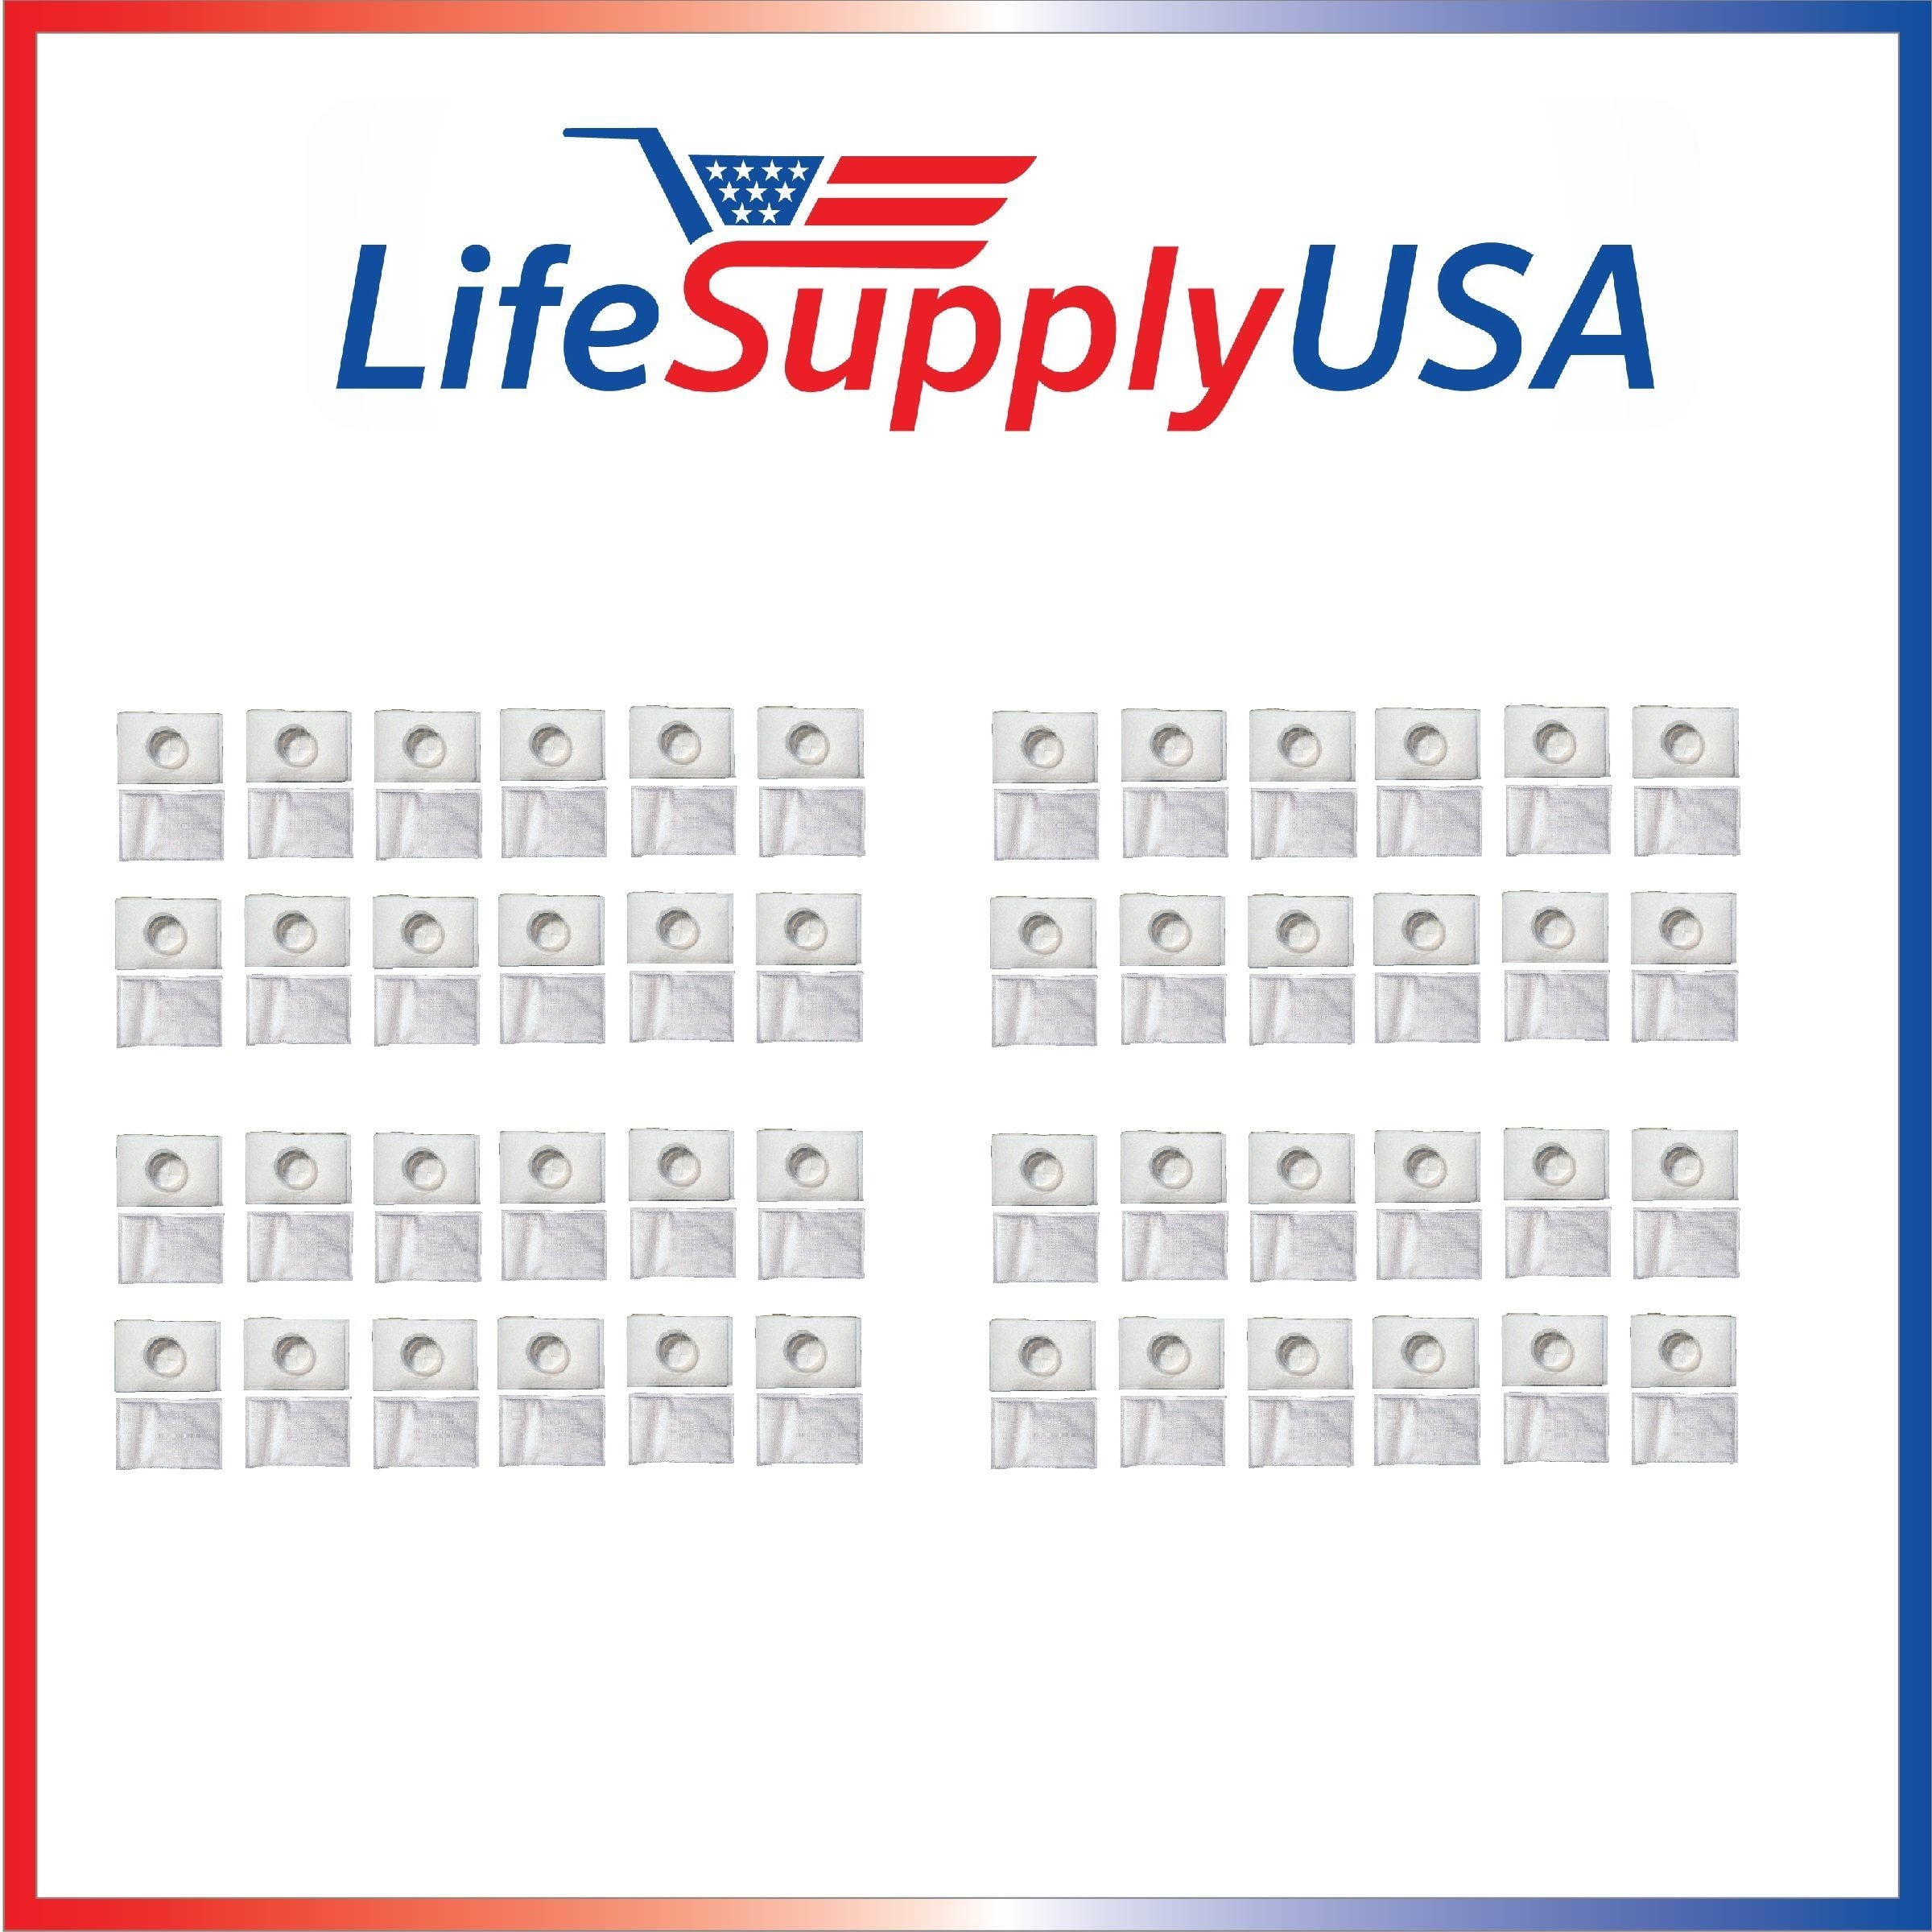 LifeSupplyUSA 96 Pack Filter for Electrolux Aerus Canister Vacuum Hepa Micro electrostatic Filter LE 2100, Ap100, Diplomat, Ambassador, Epic 6500, Full Kit, 200 350 622 10, 079